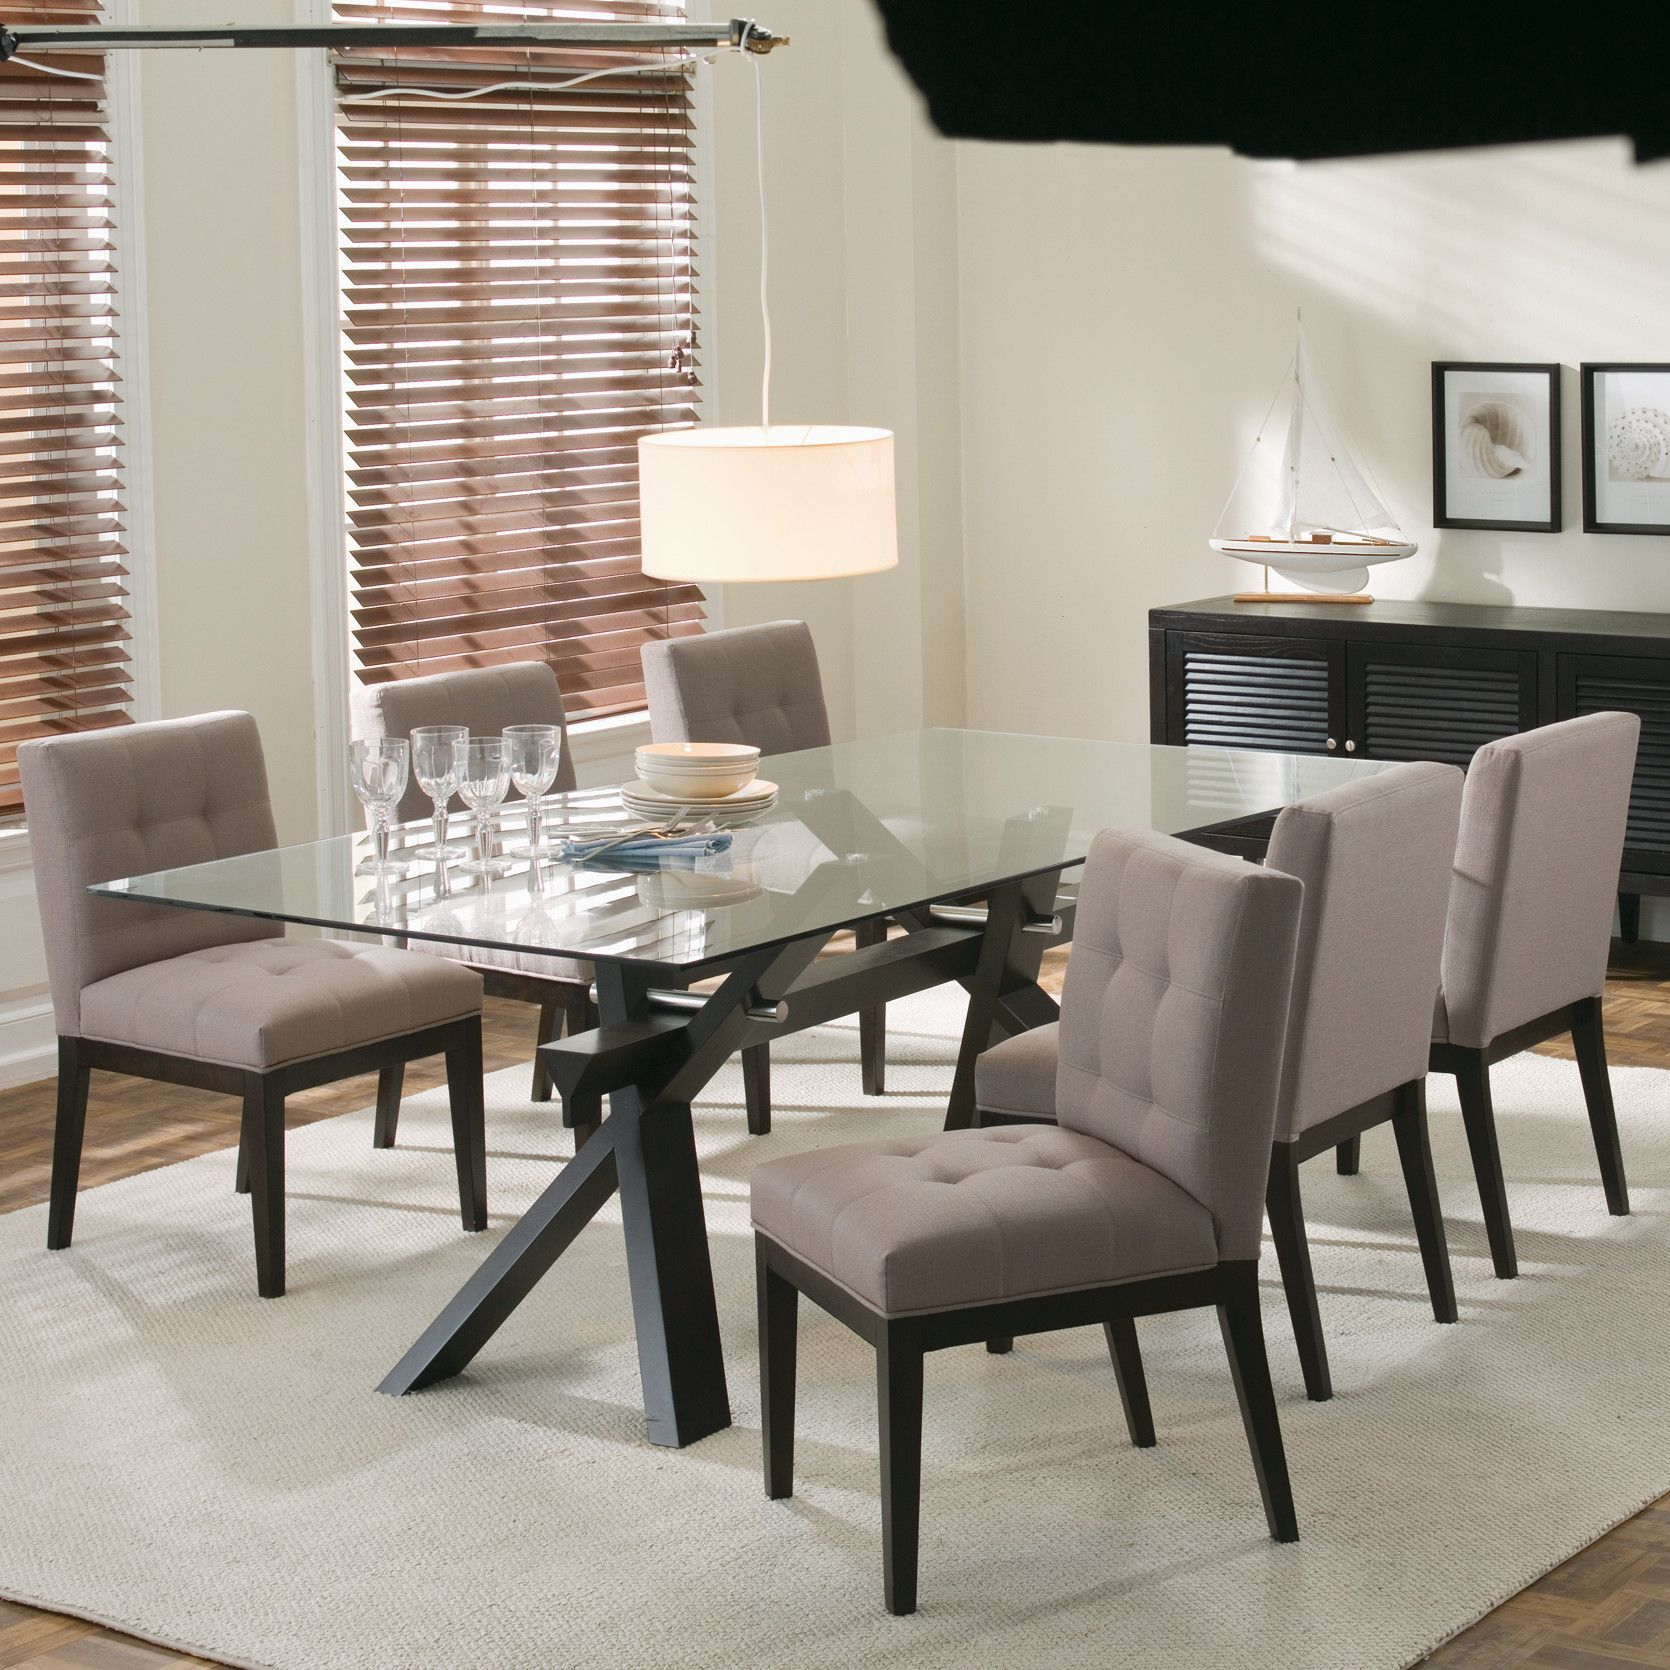 Wooden Dining Table And Chairs John Lewis